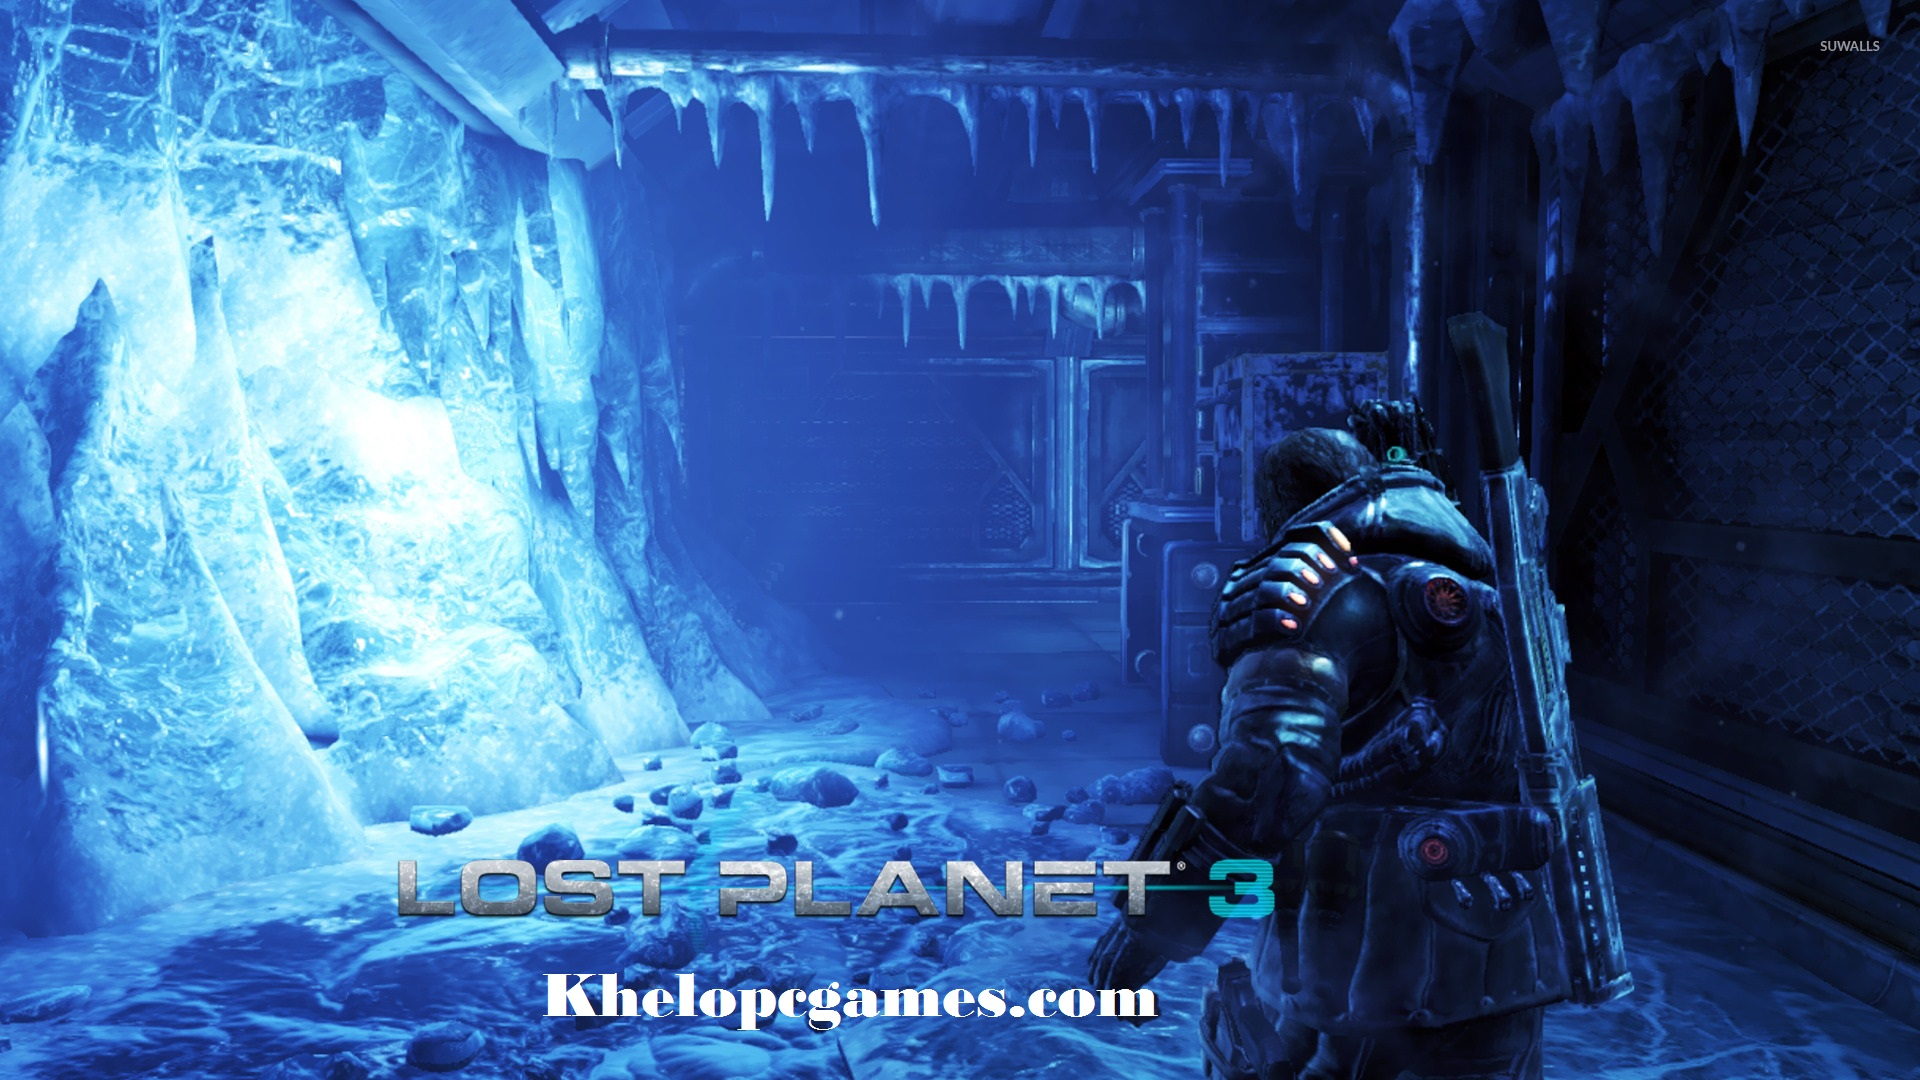 Lost Planet 3 Complete Free Download Full Version PC Game Setup